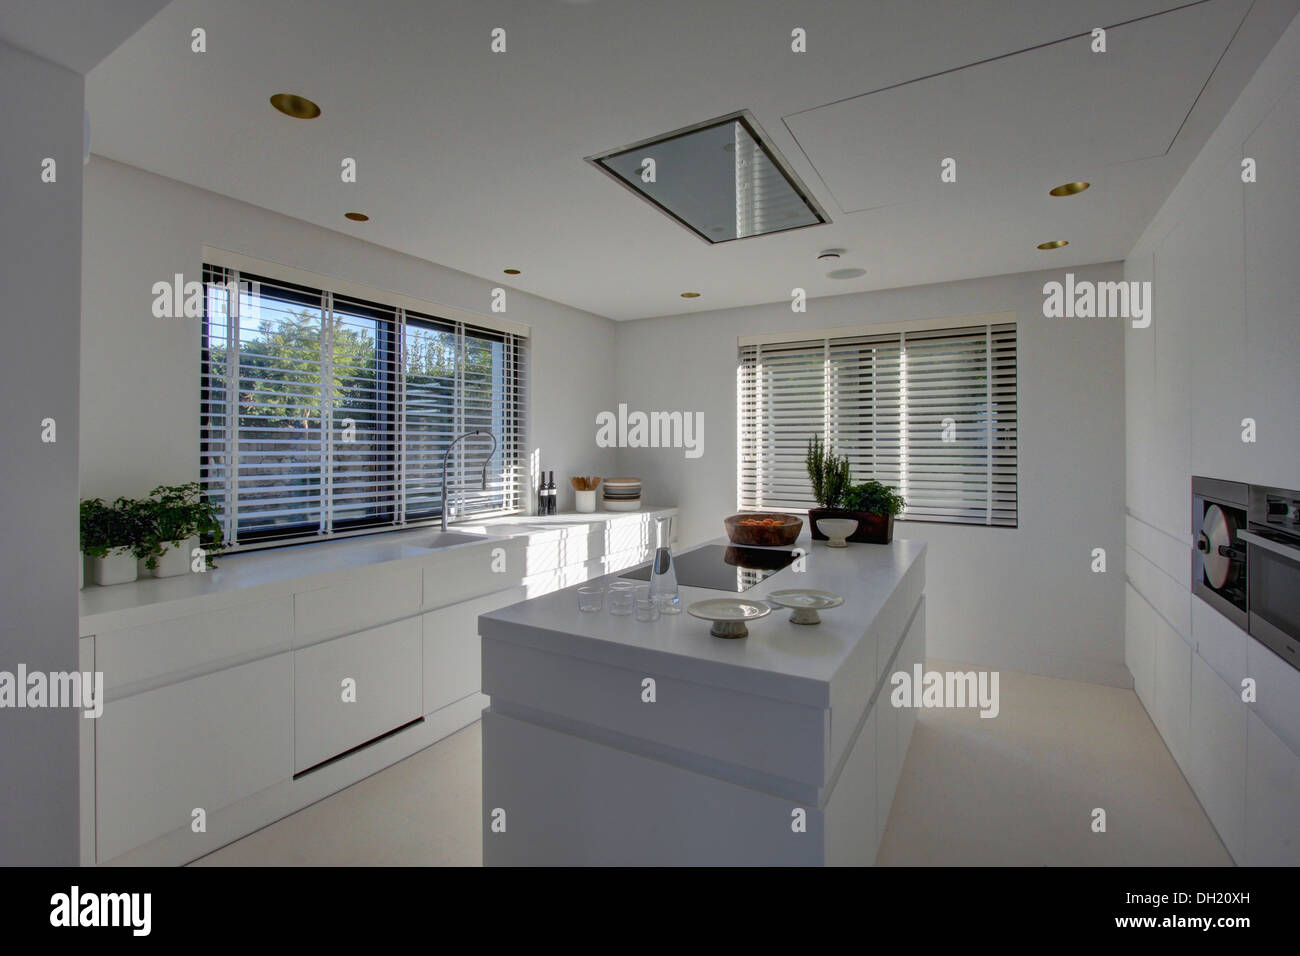 Modern Kitchen Blinds island unit in modern white kitchen with white venetian blinds on